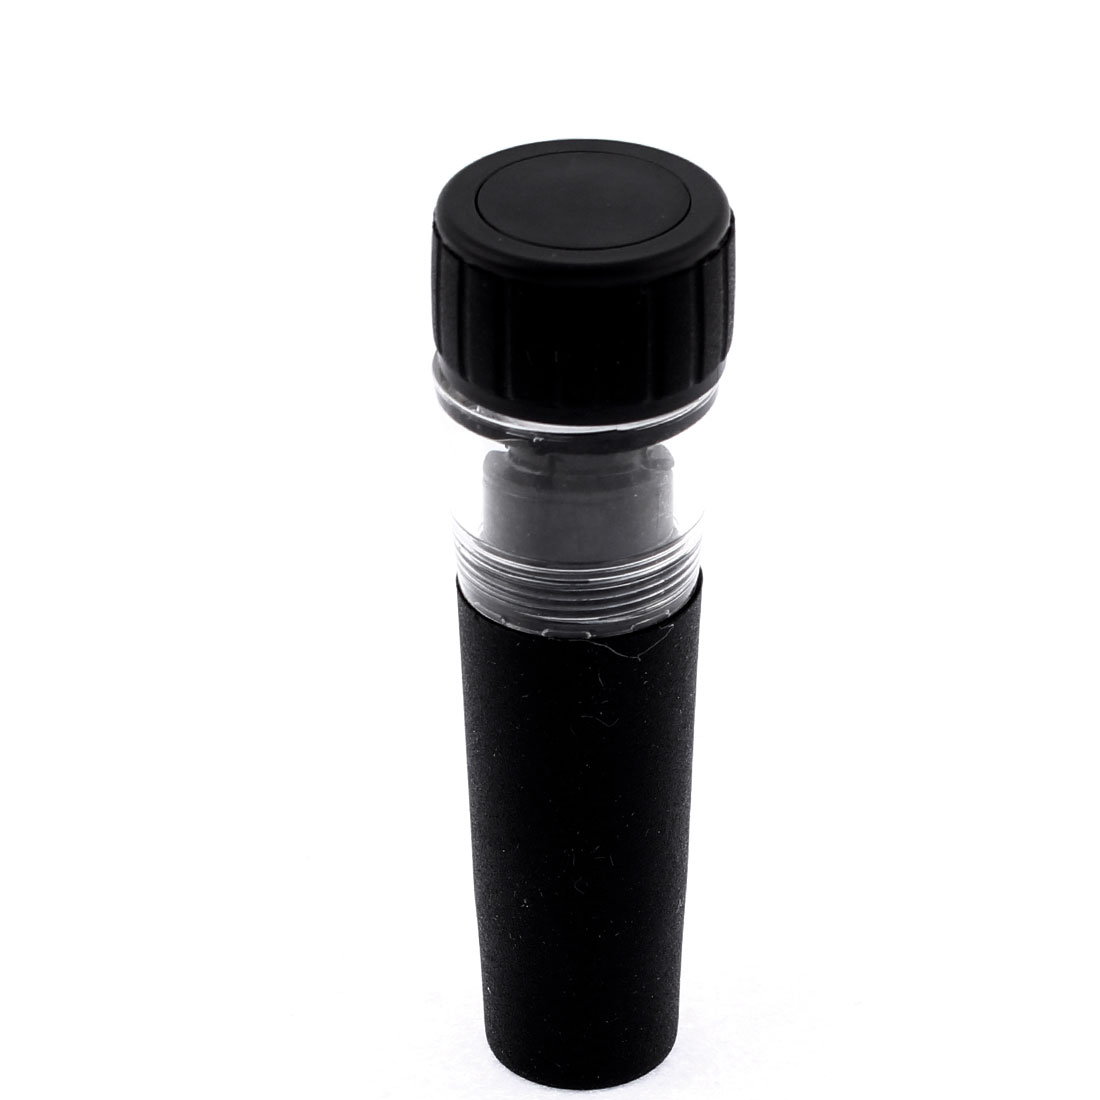 Wine Vacuum Sealing Bottle Air Pump Sealer Cap Stopper Preserver Black